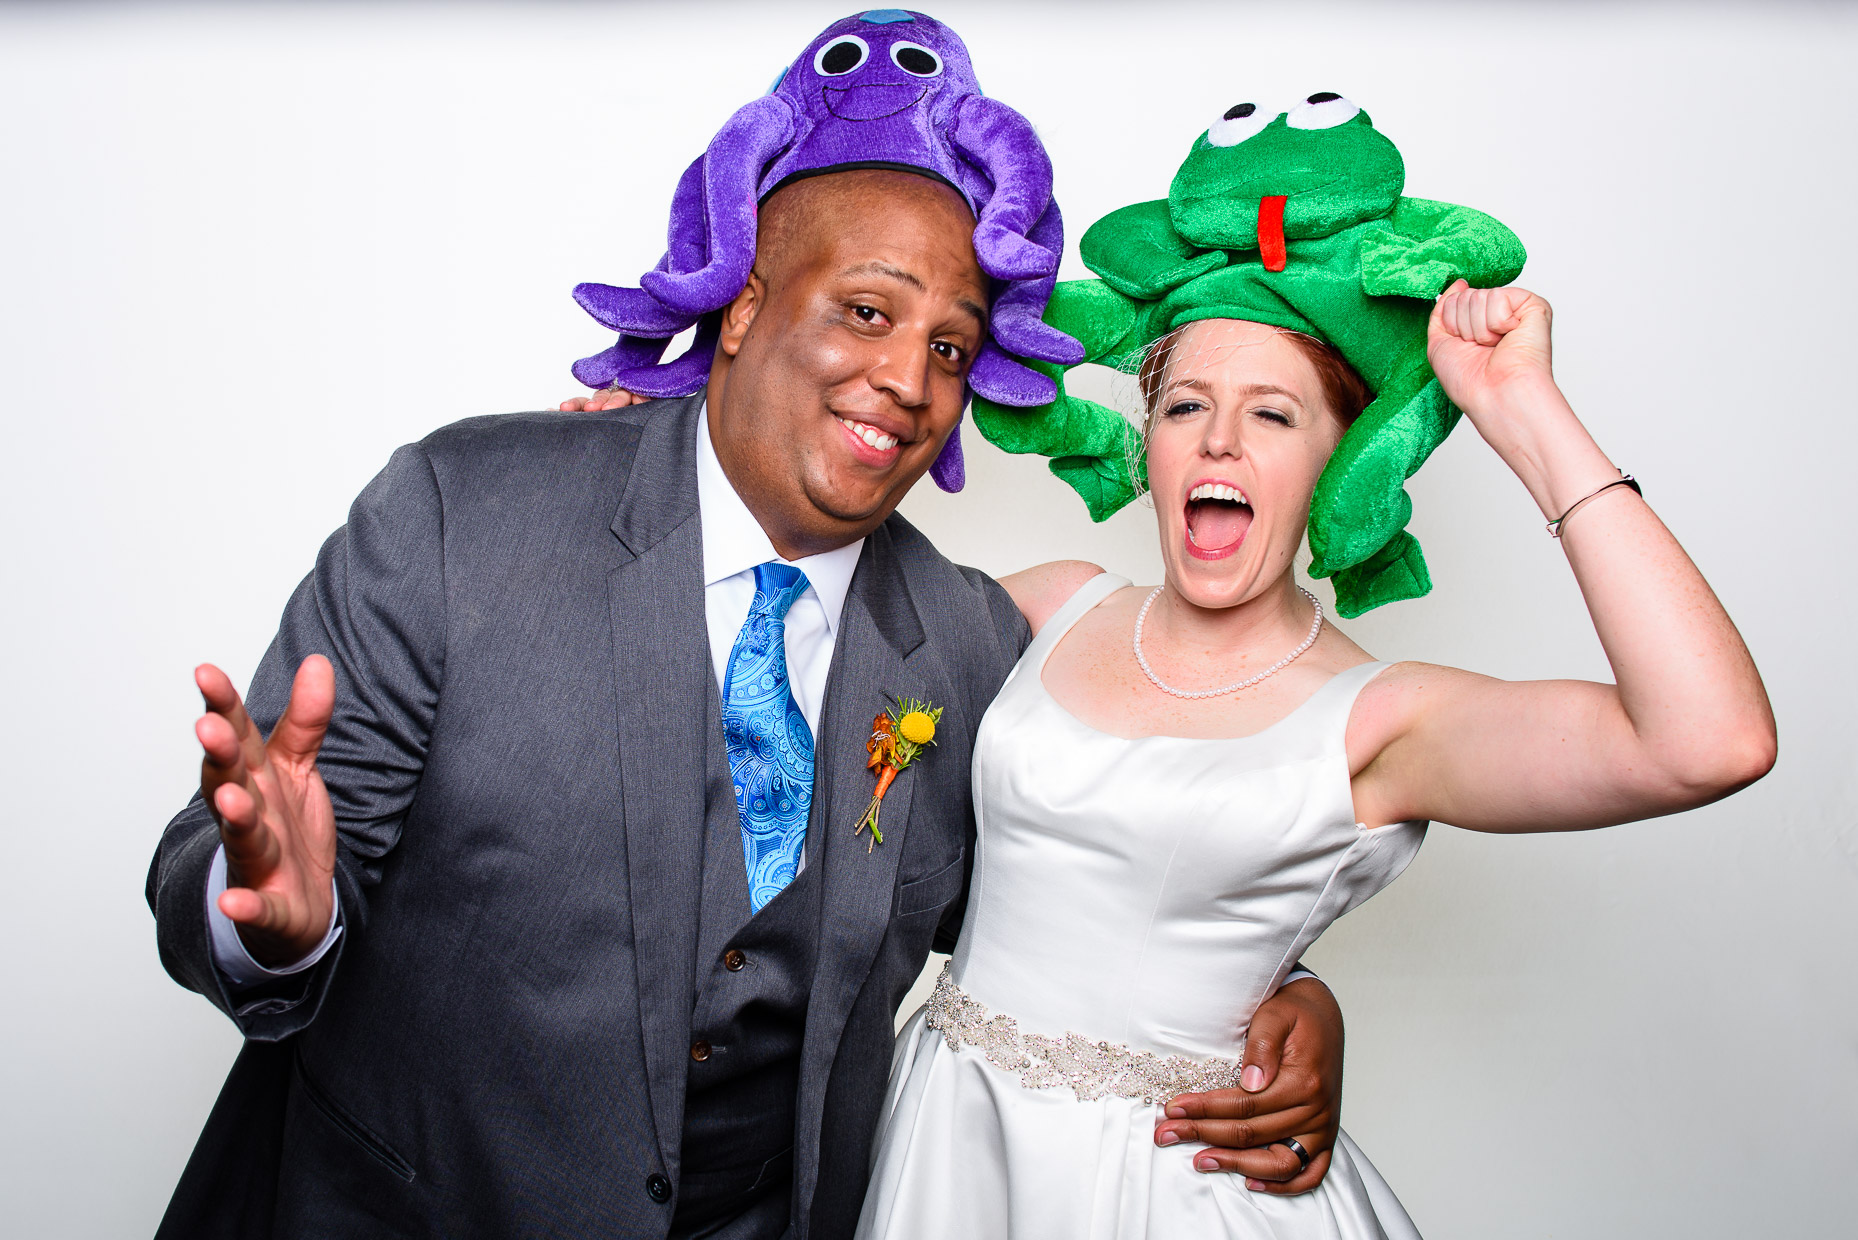 austin-wedding-photographers-barr-mansion-bride-groom-photo-booth-fun